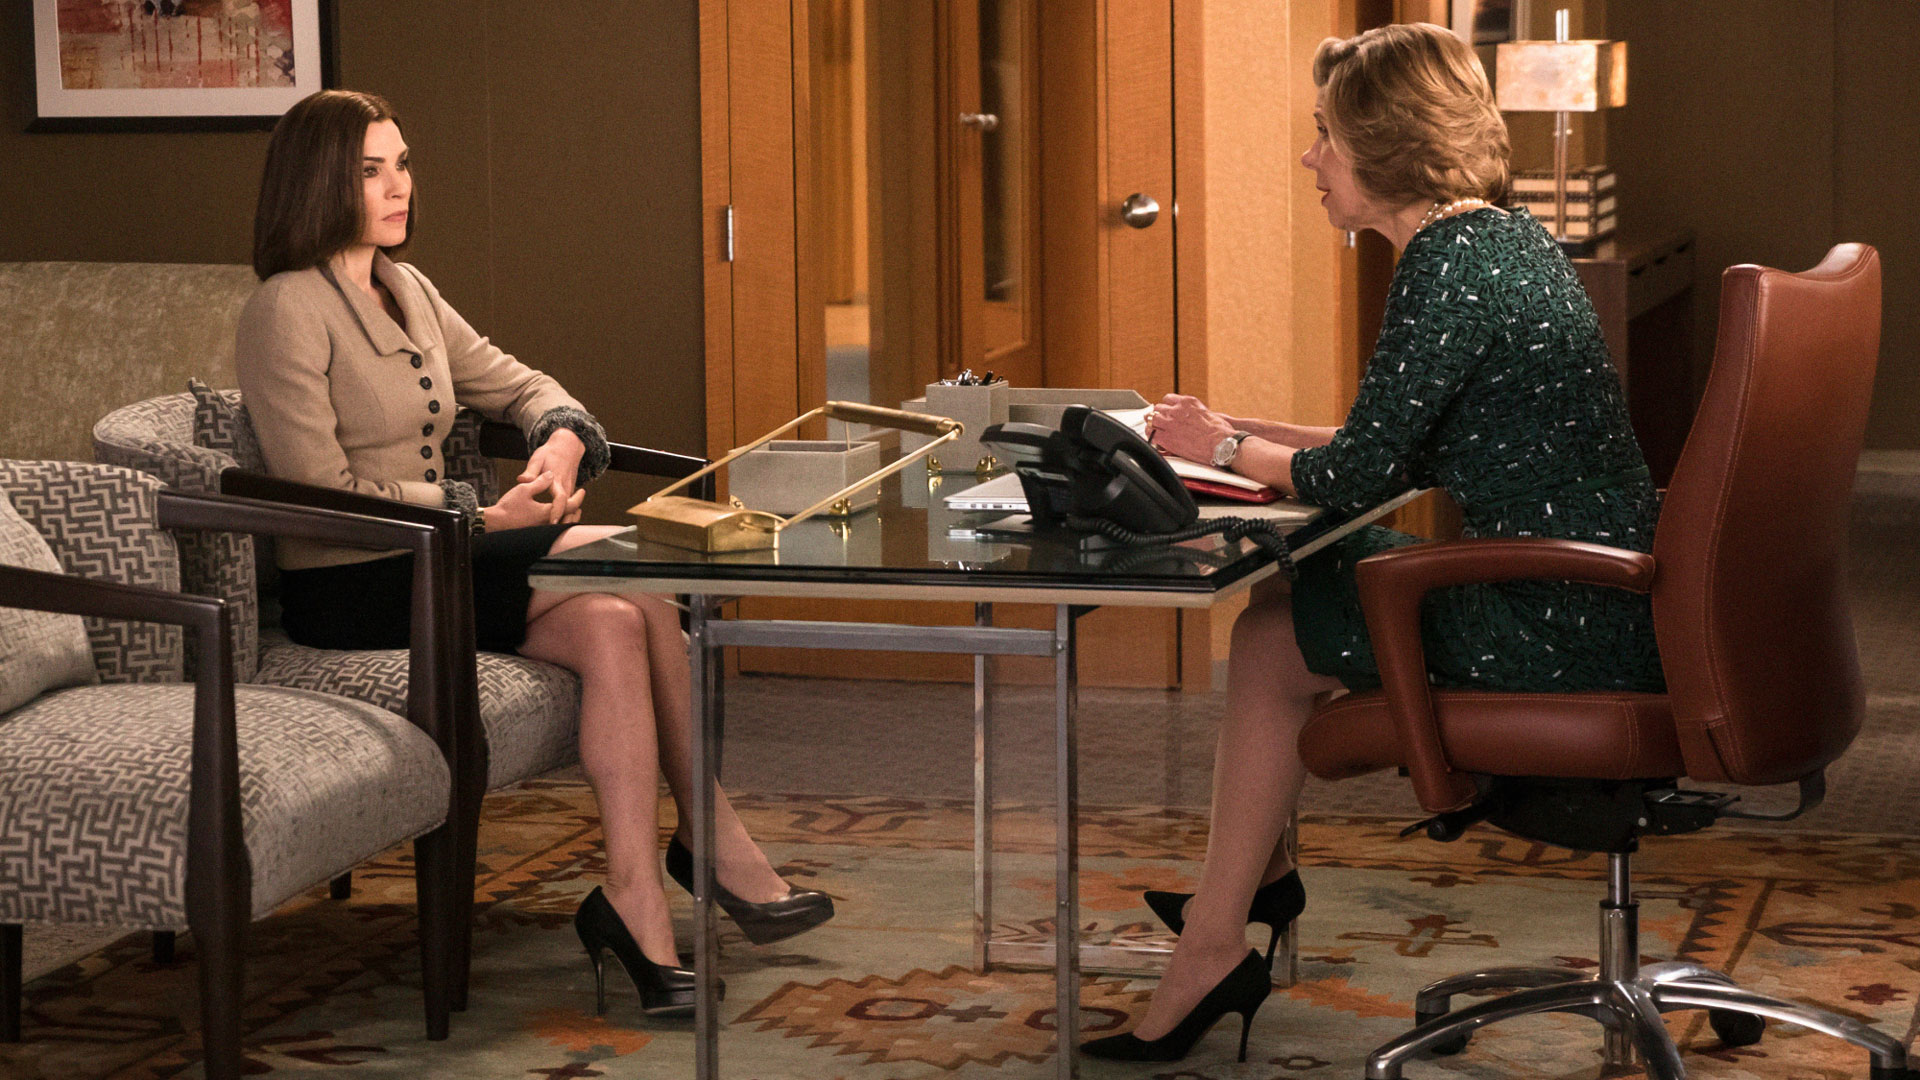 Julianna Margulies as Alicia Florrick and Christine Baranski as Diane Lockhart